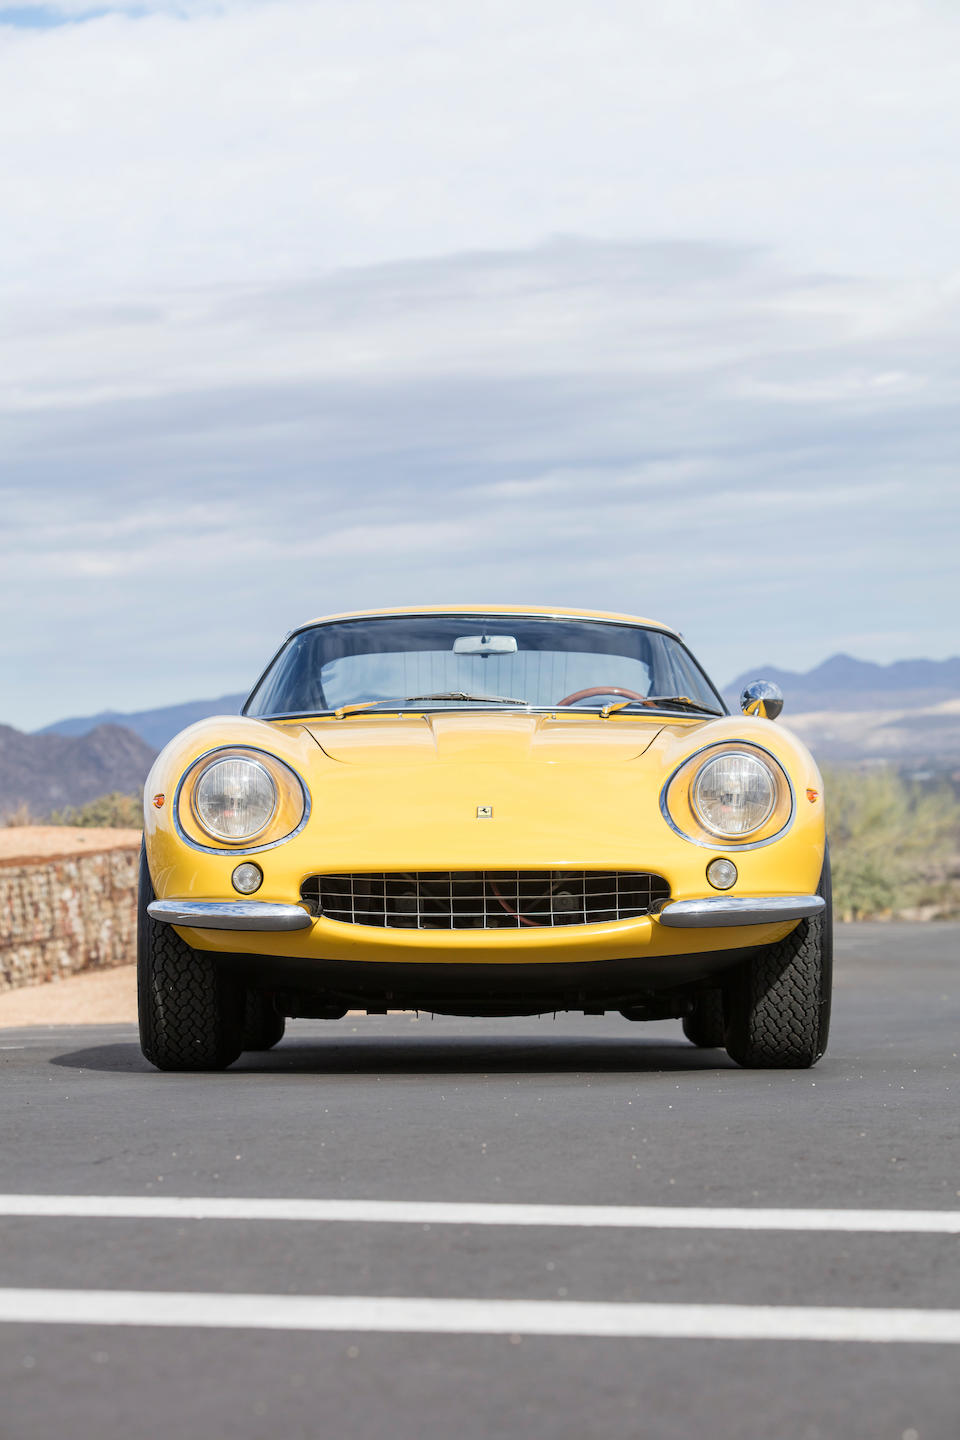 <b>1967 Ferrari 275 GTB/4</b><br />Chassis no. 10381<br />Engine no. 10381